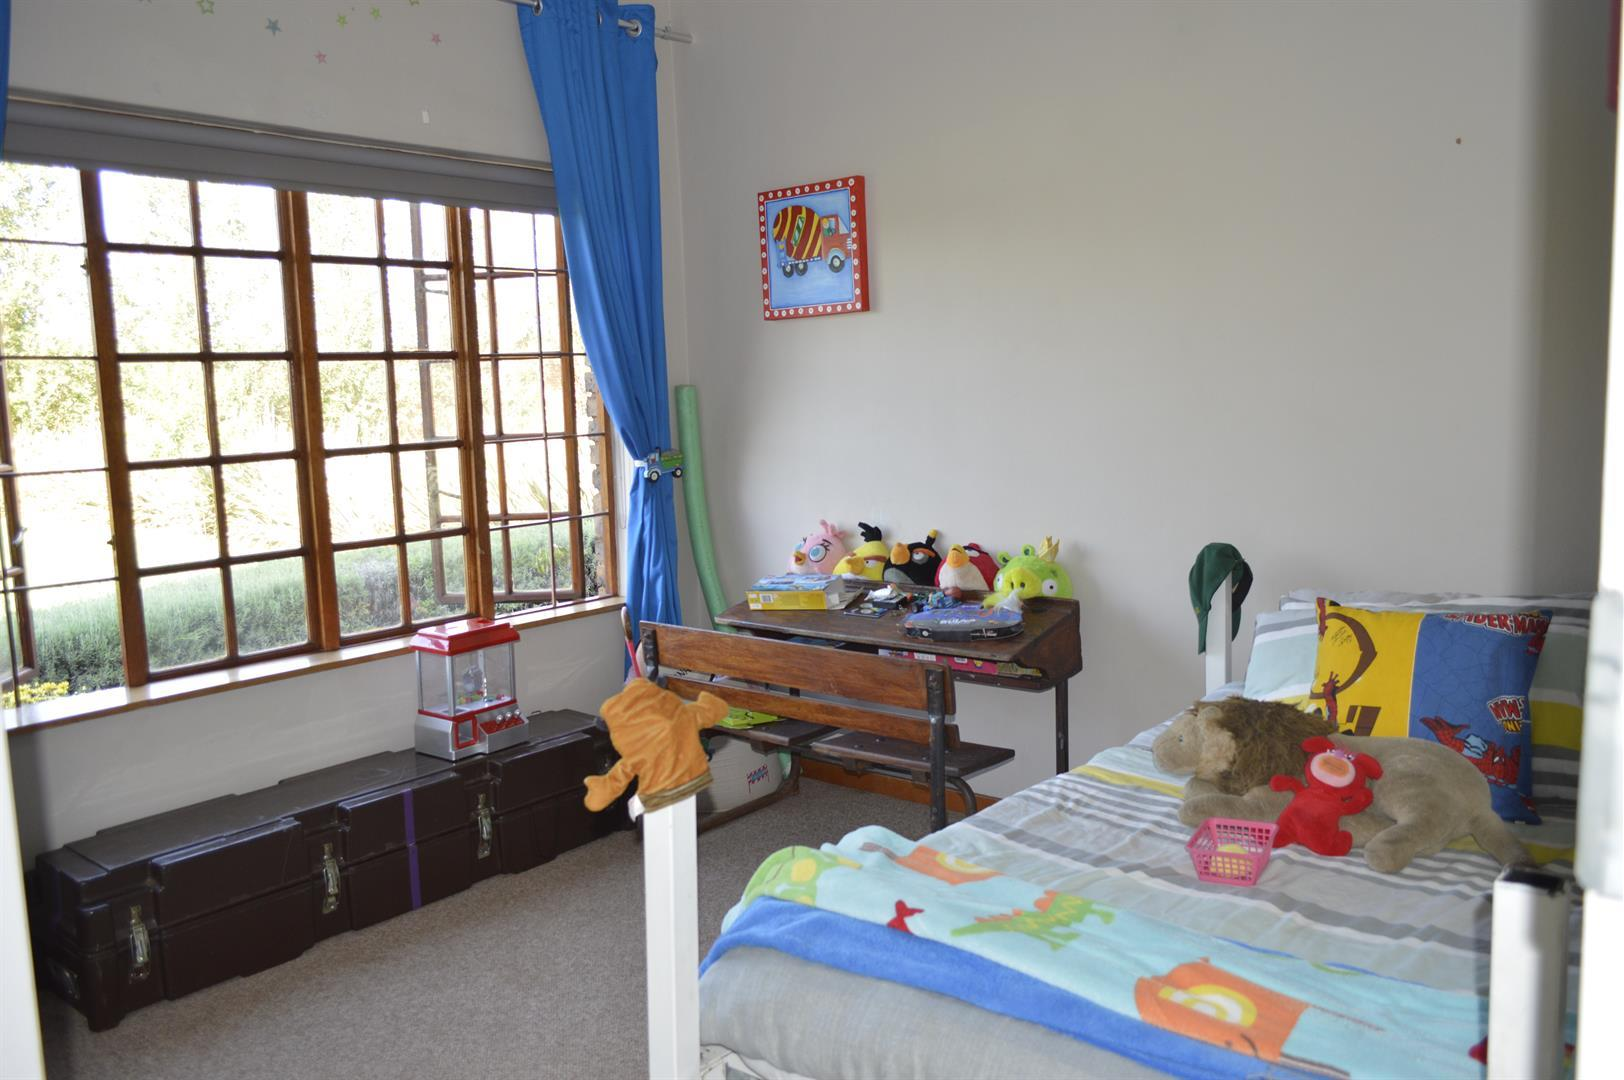 Raslouw A H property for sale. Ref No: 13442161. Picture no 15